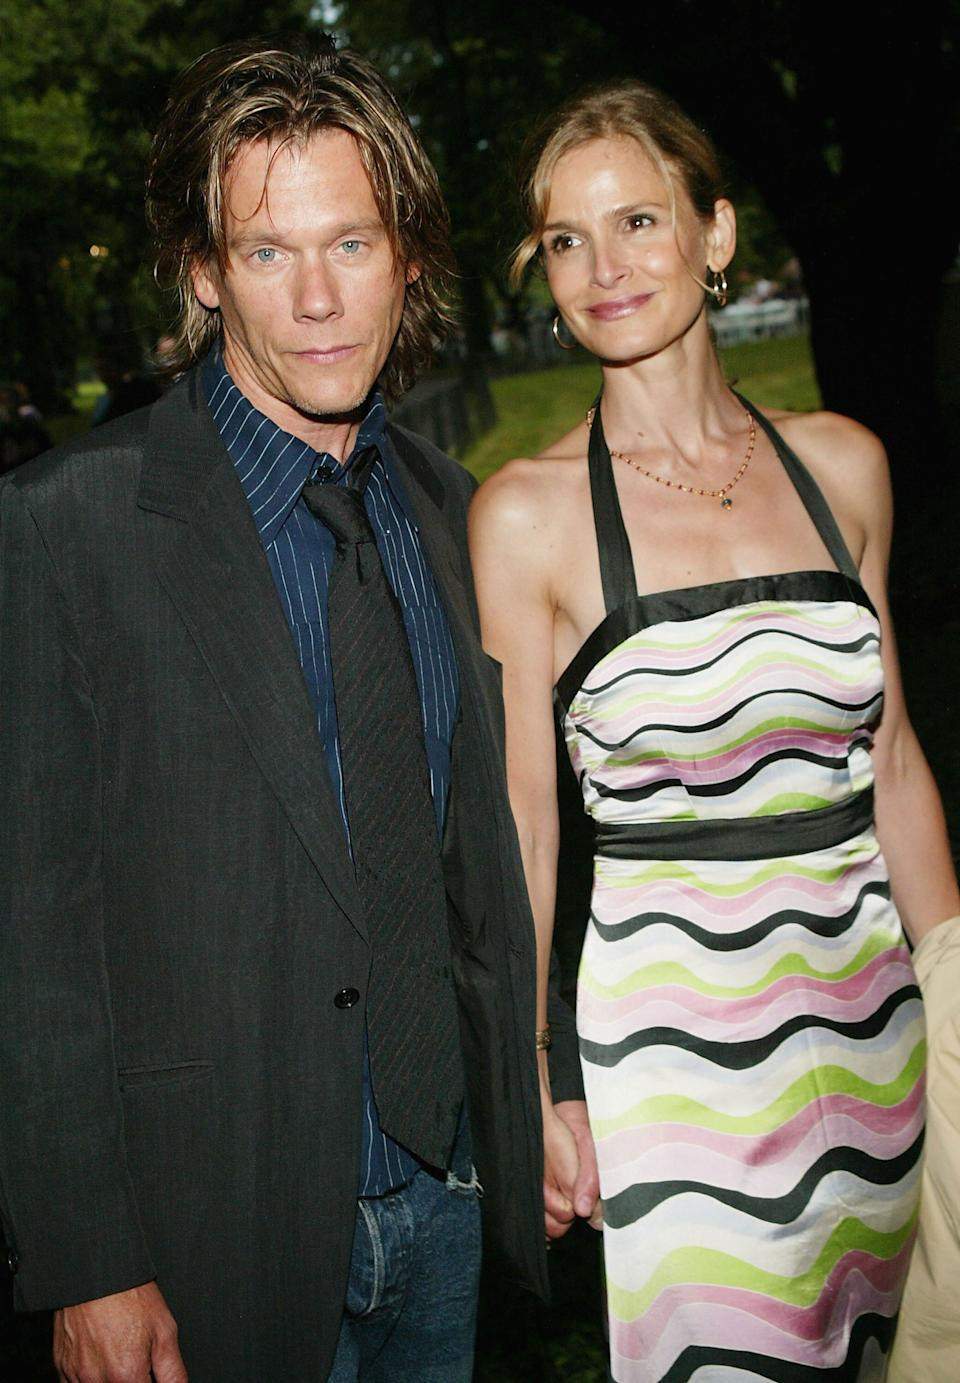 """Bacon and Sedgwick attend the Public Theater's summer benefit and opening night performance of """"Much Ado About Nothing"""" at Delacorte Theater in Central Park."""